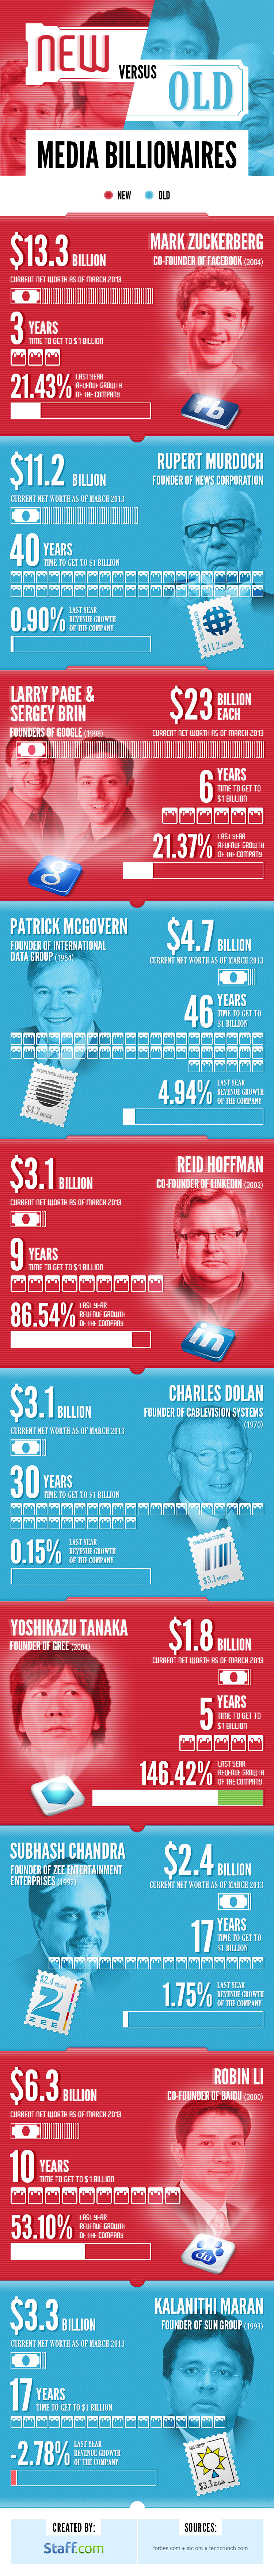 New vs Old Media Billionaires [Infographic]